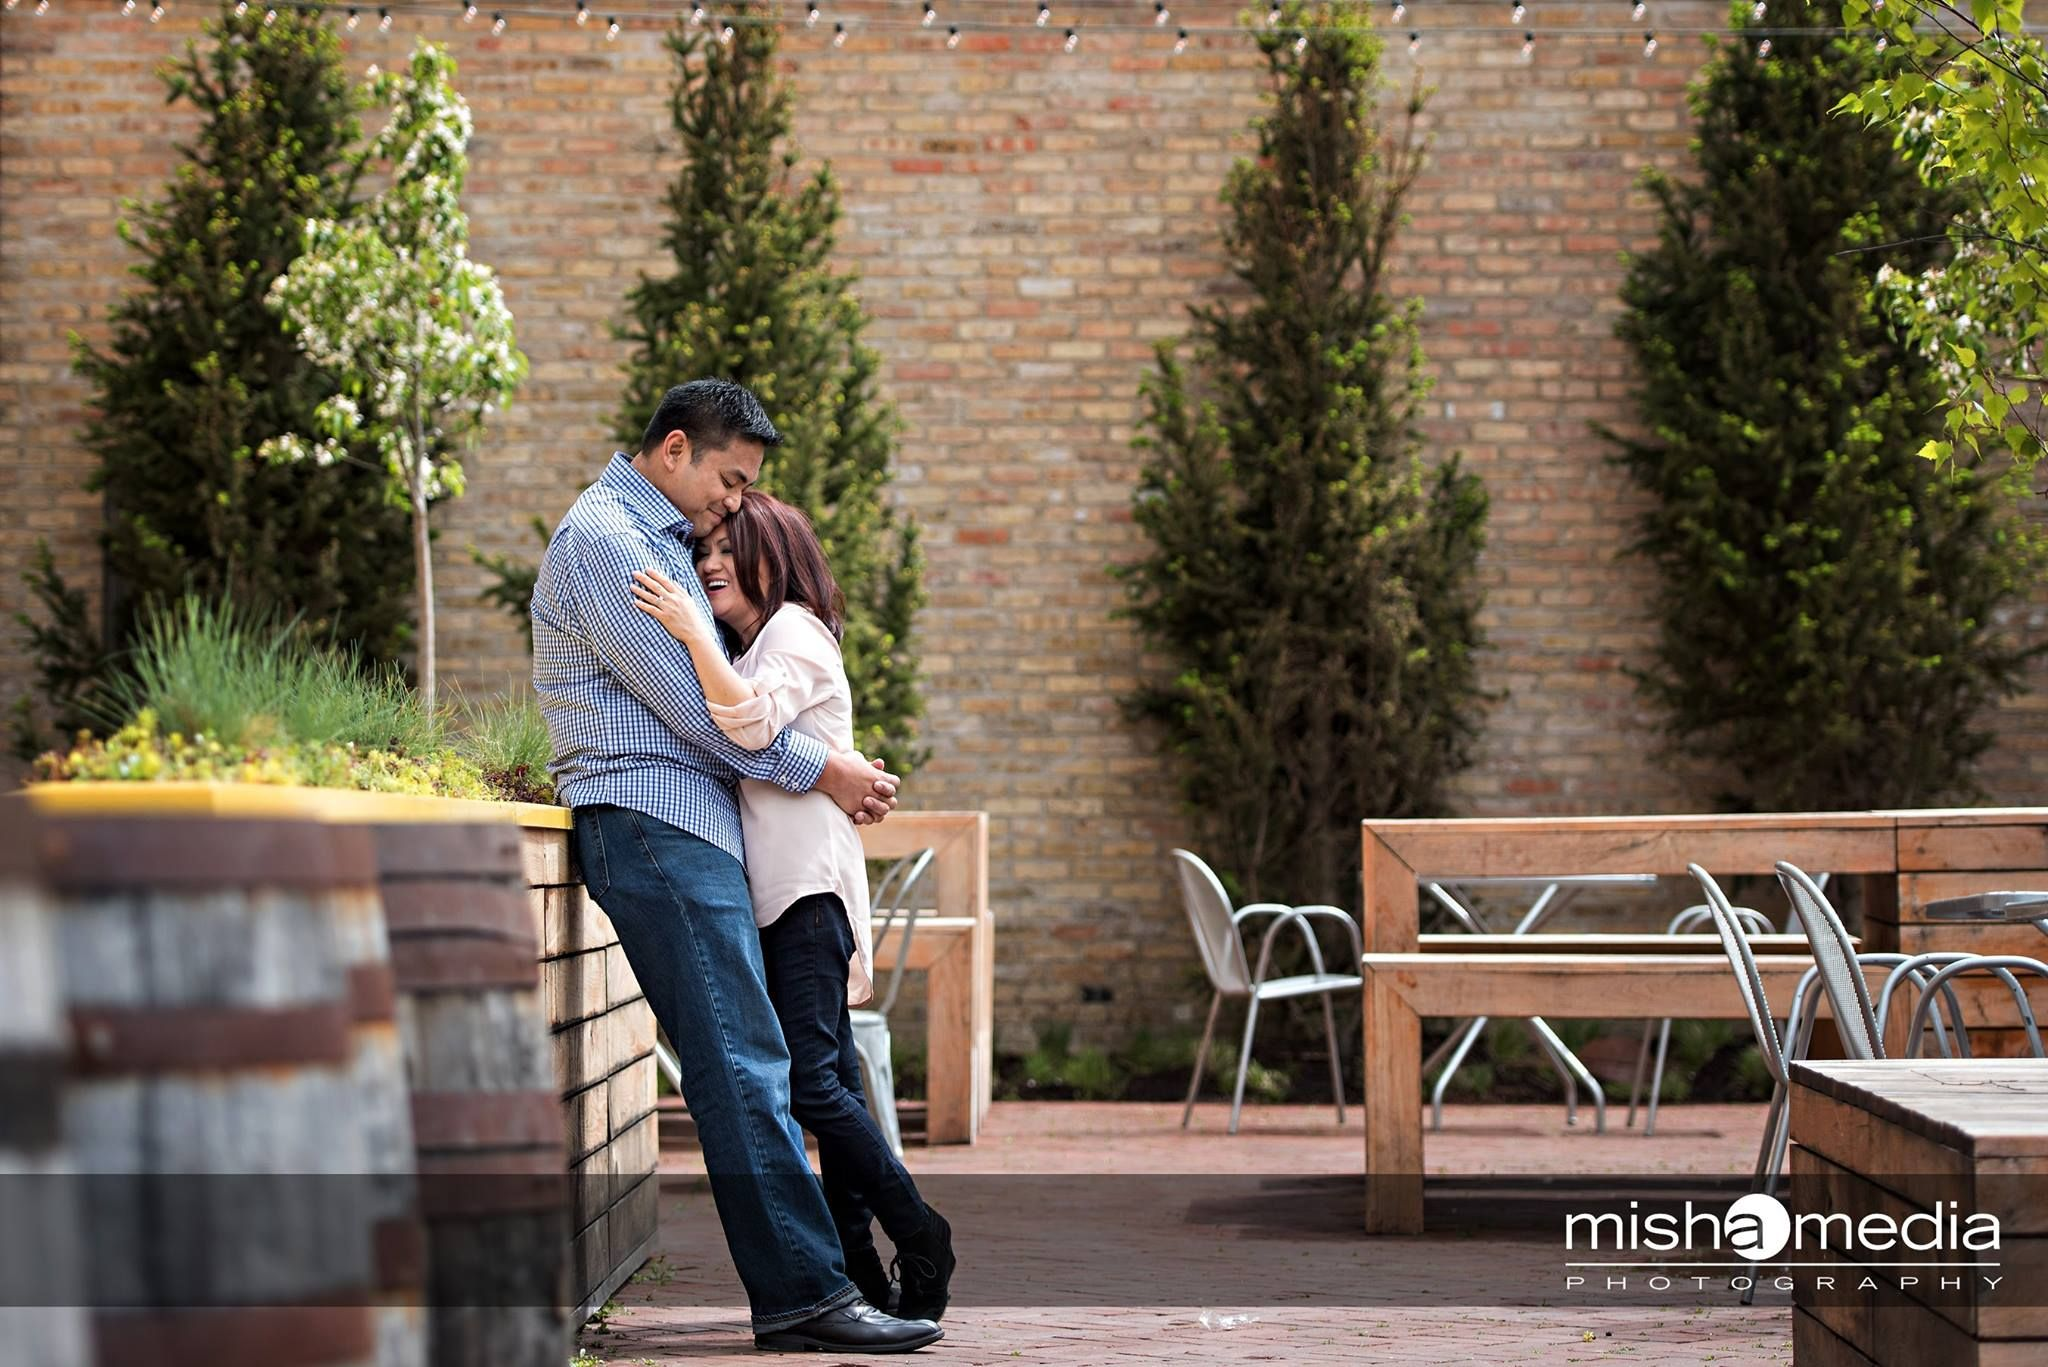 No relationship is full of sunshine. But, if you can create a relationship where you can weather the storm together...that's what's important!  We would love to showcase your love: http://mishamedia.com/  #mishamedia #engagementphoto #chicagophotographer #chicagoengagementphotographer